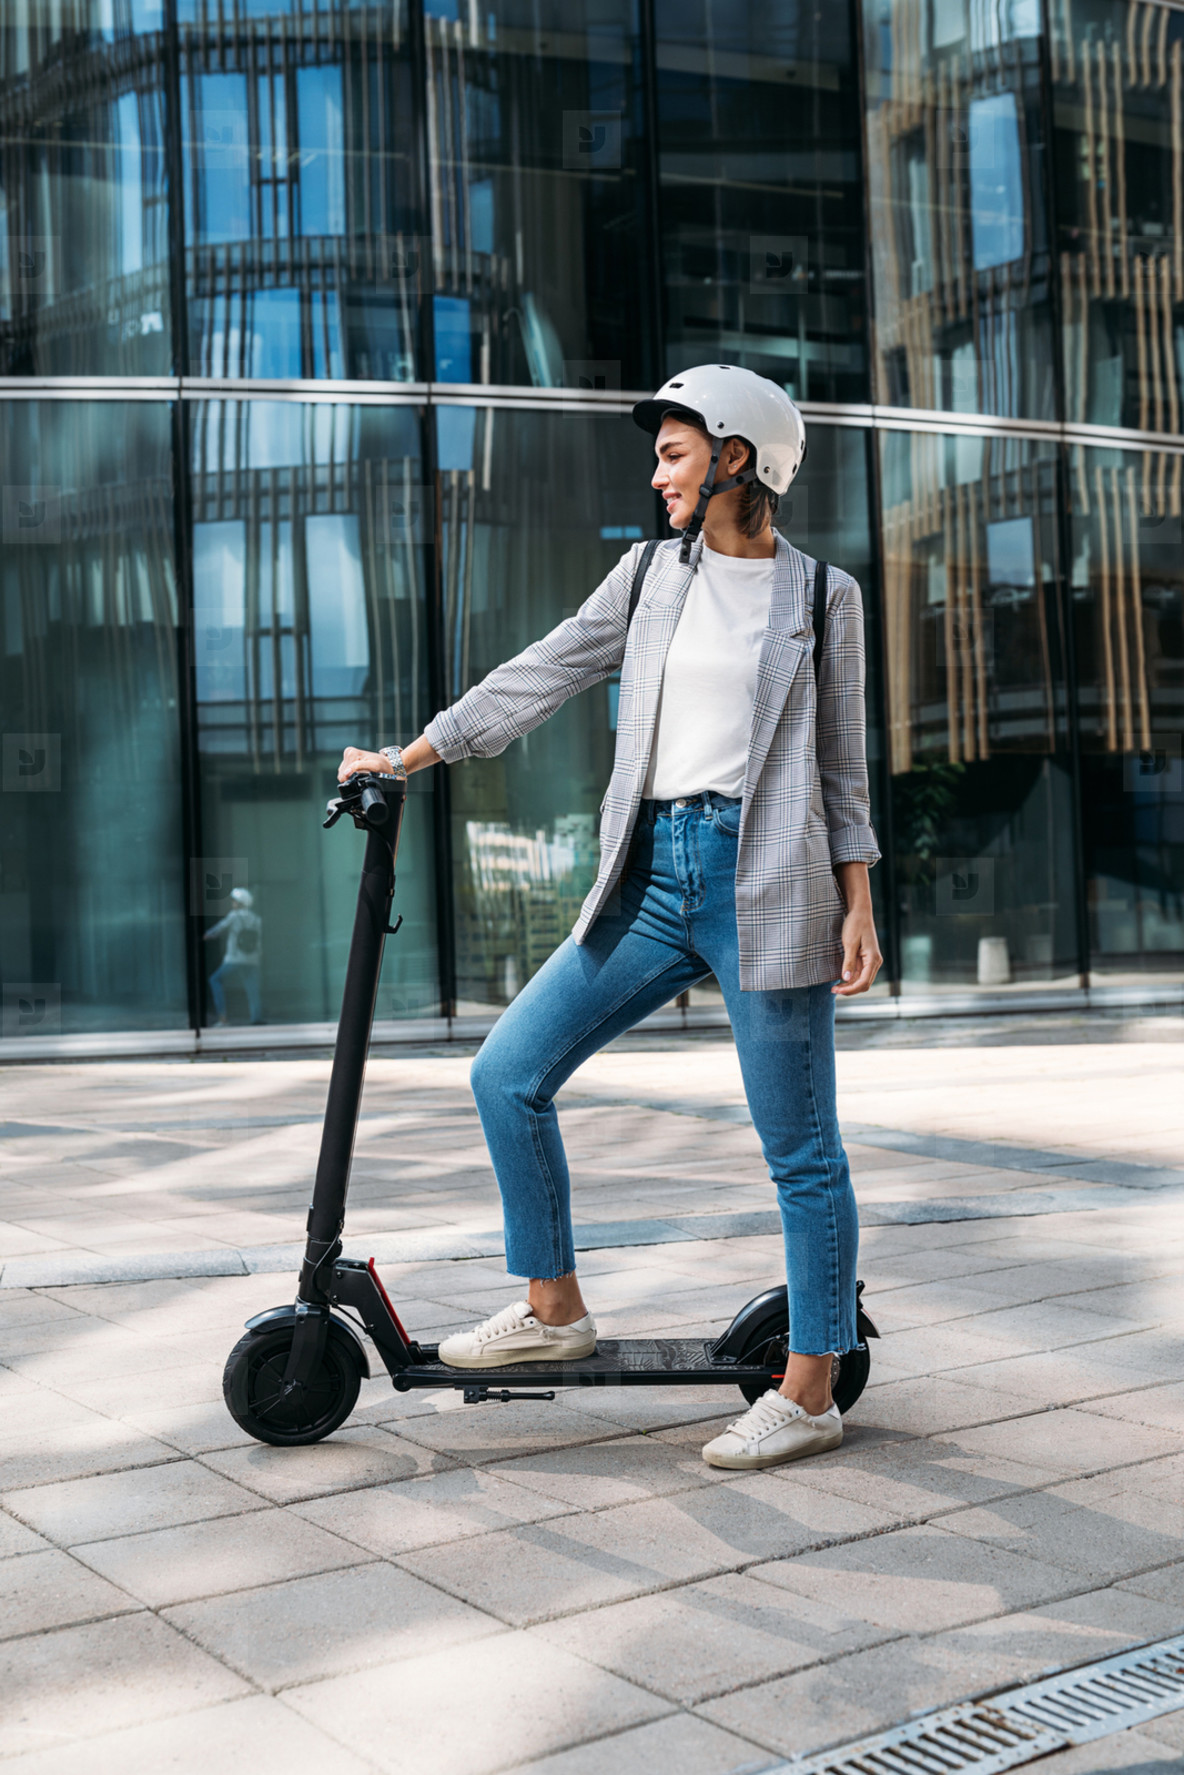 Side view young woman standing on electrical scooter near an office building  Female in helmet ready for a ride on scooter